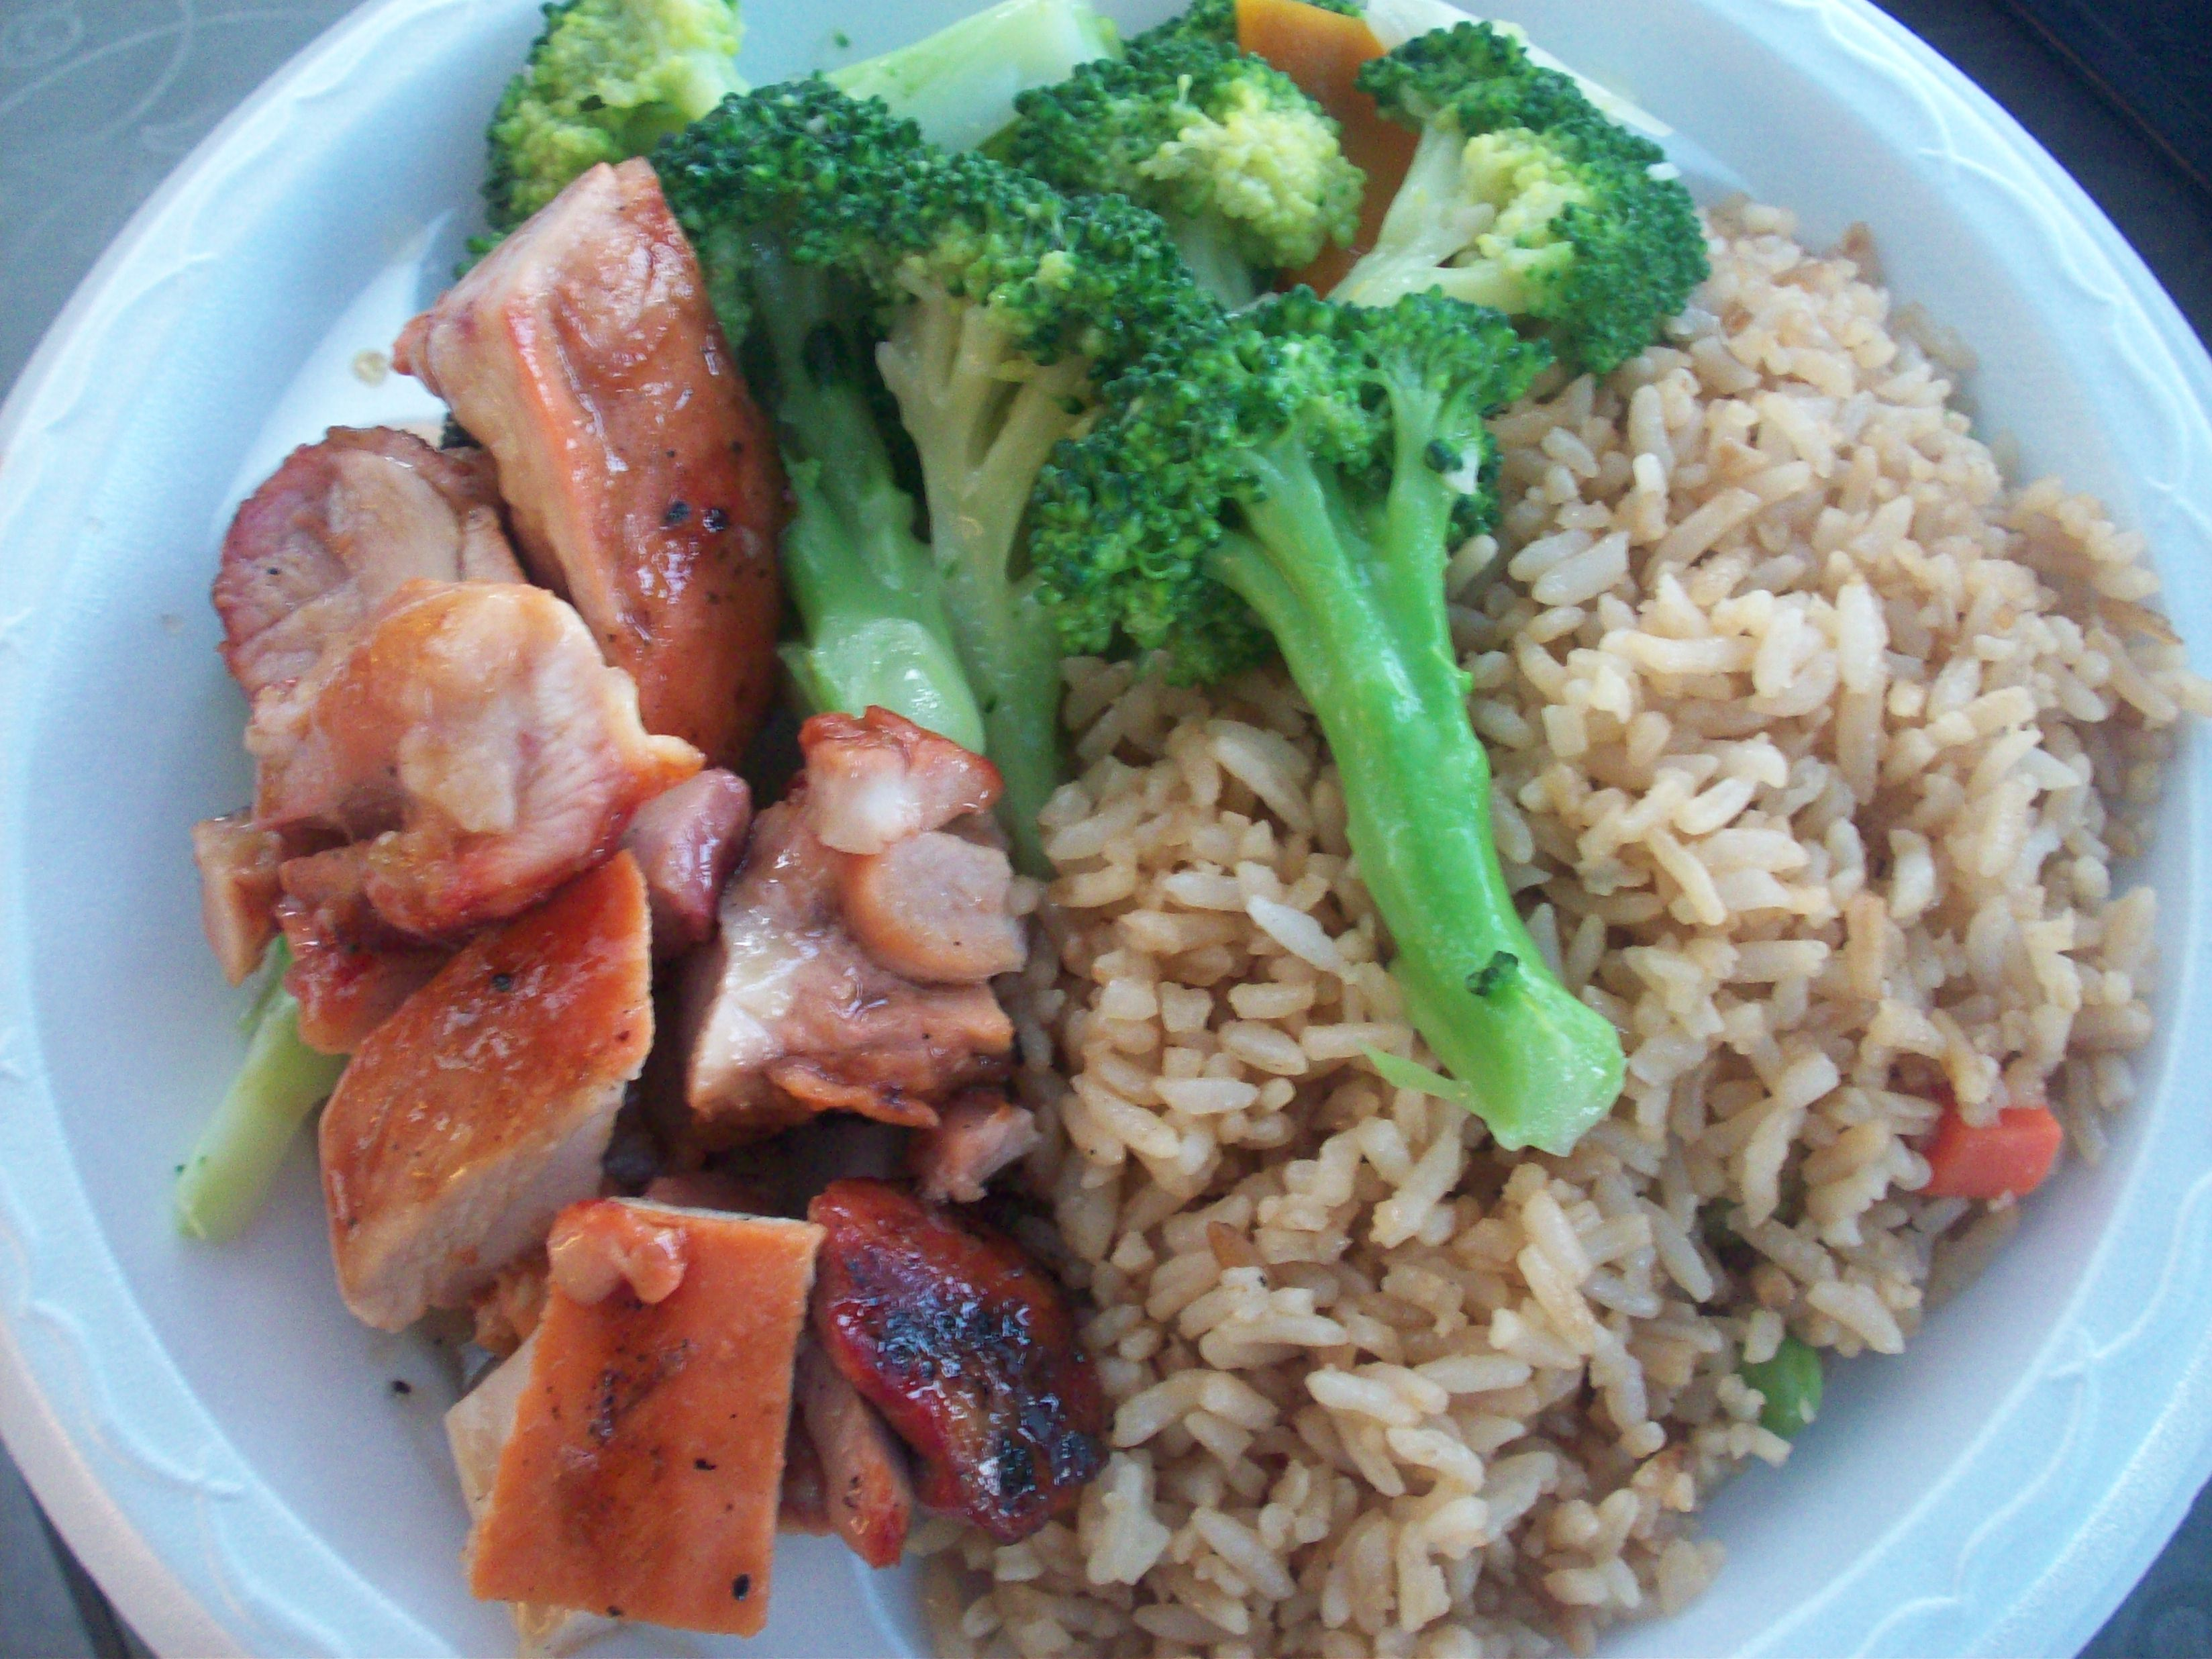 http://foodloader.net/cutie_2010-08-27_Bourbon_Chicken_with_Rice.jpg